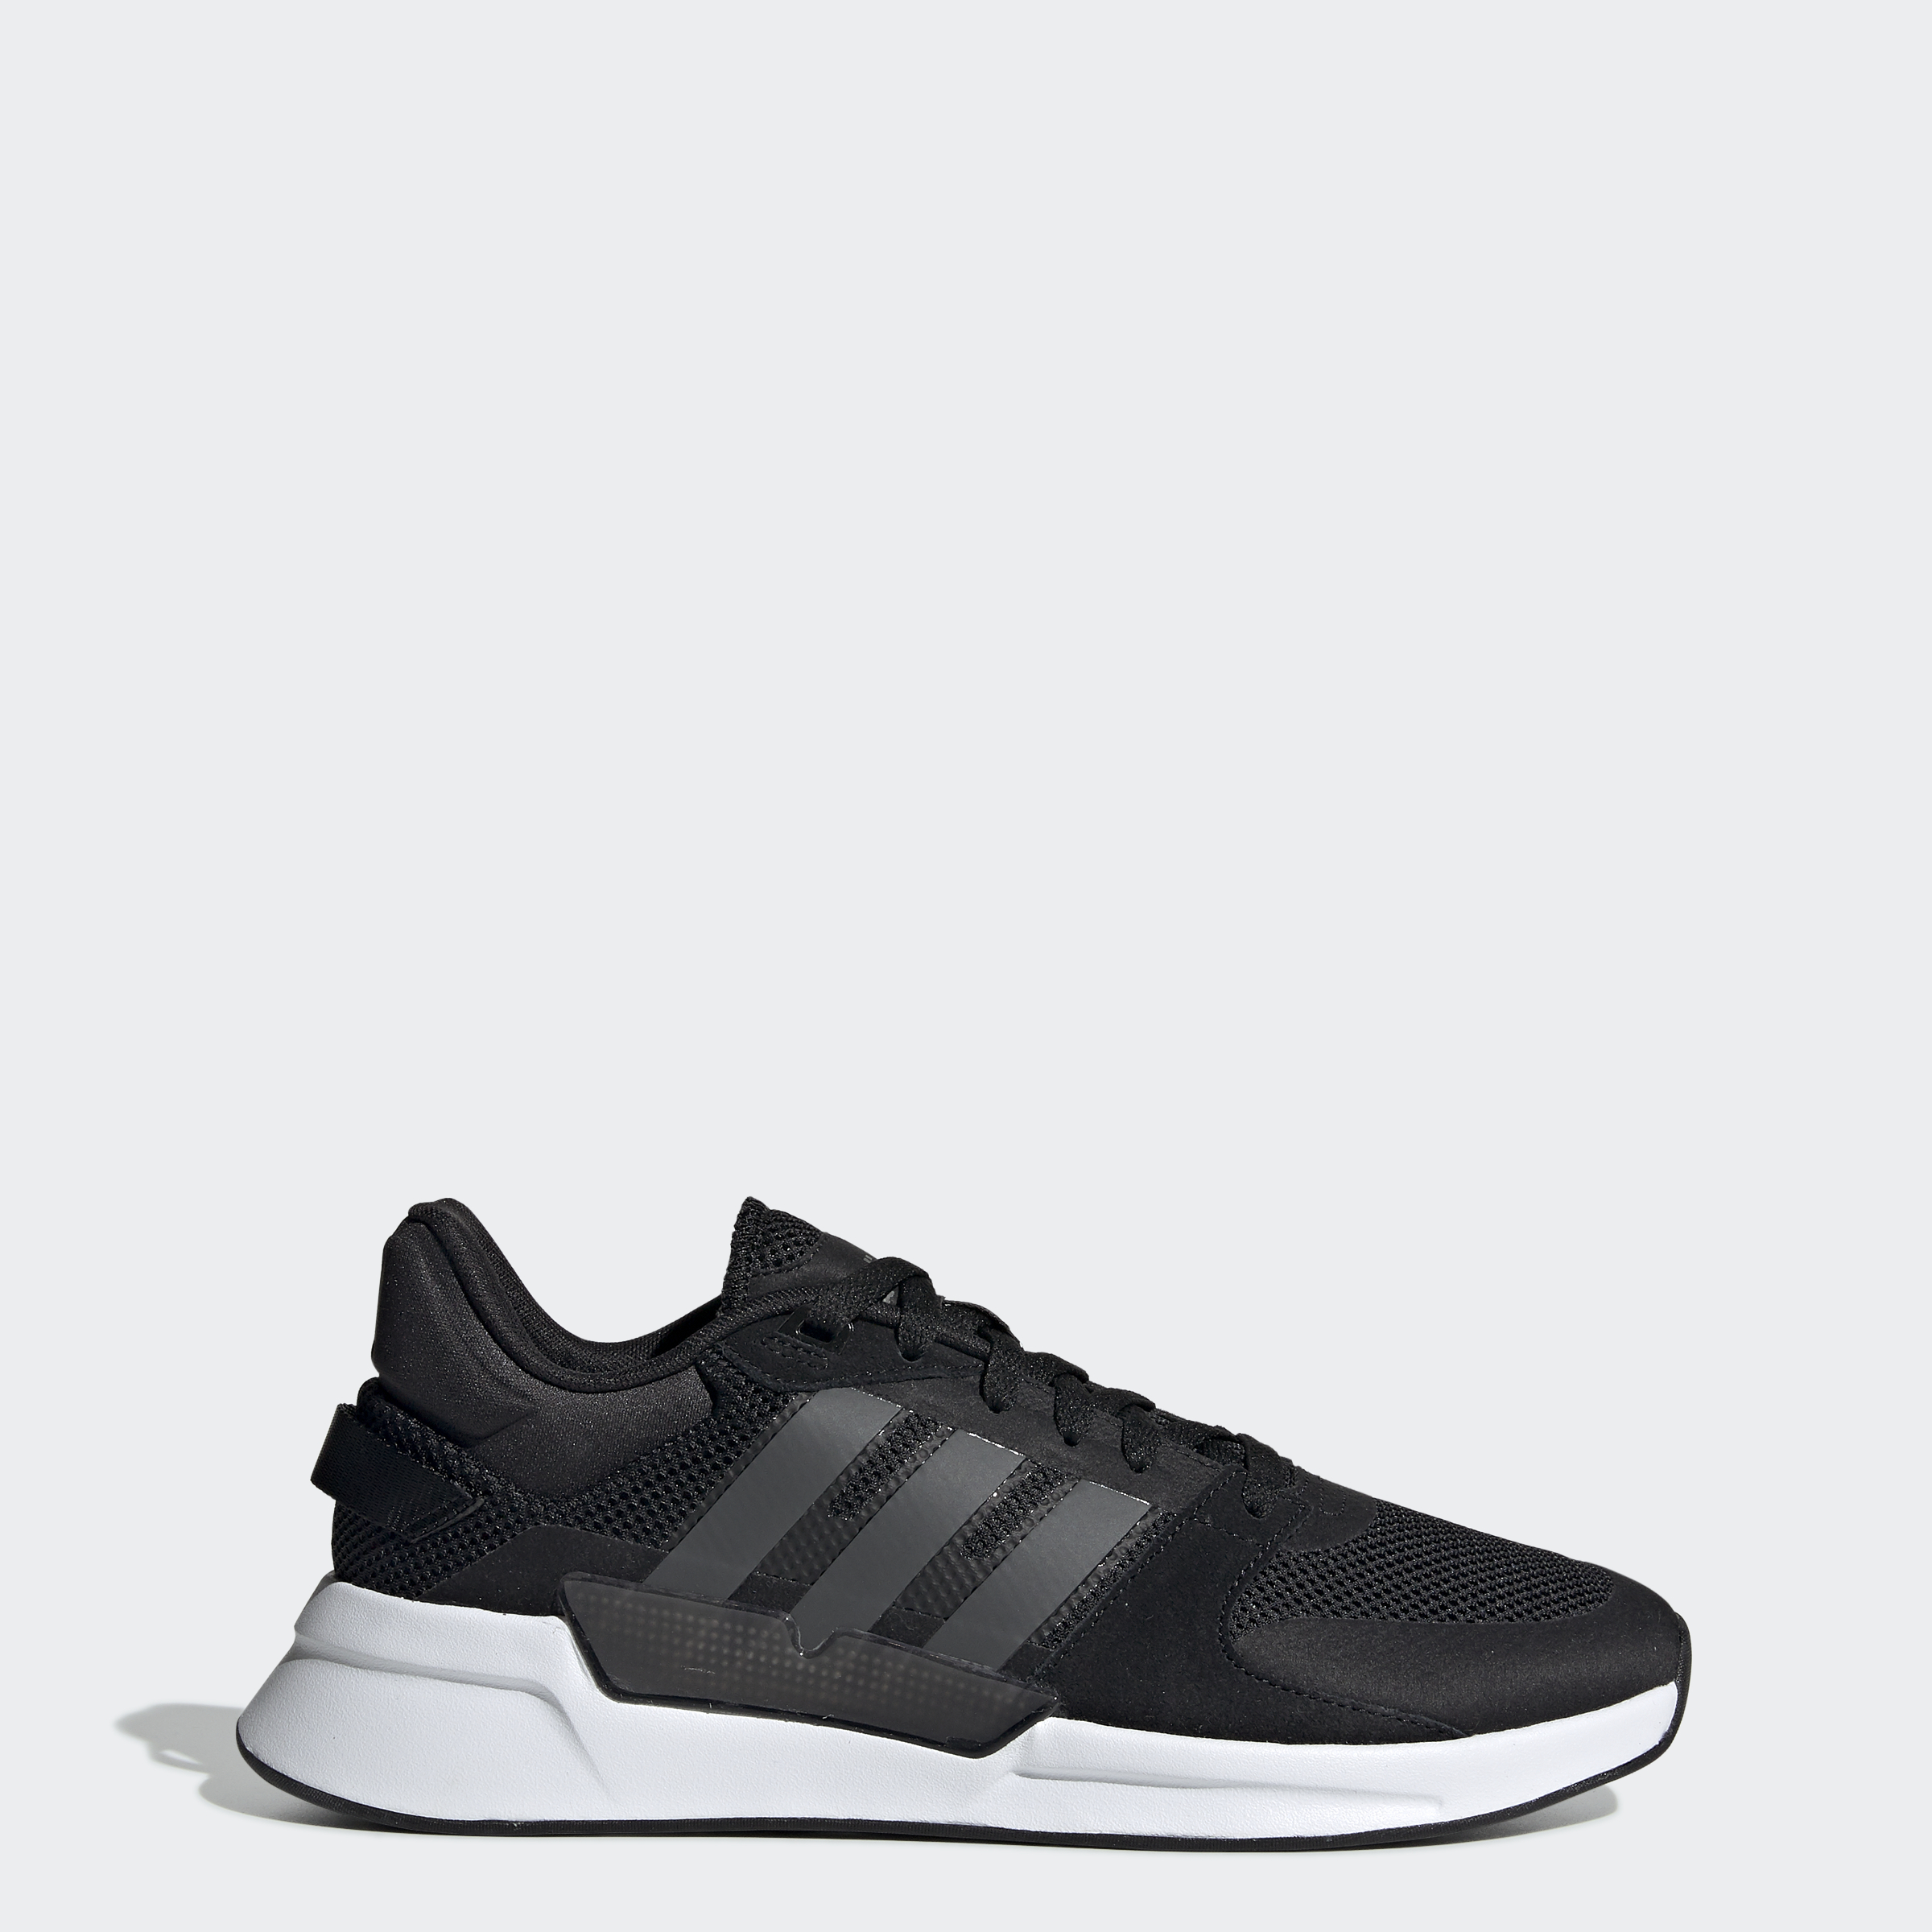 adidas-Originals-Run-90s-Shoes-Men-039-s thumbnail 10